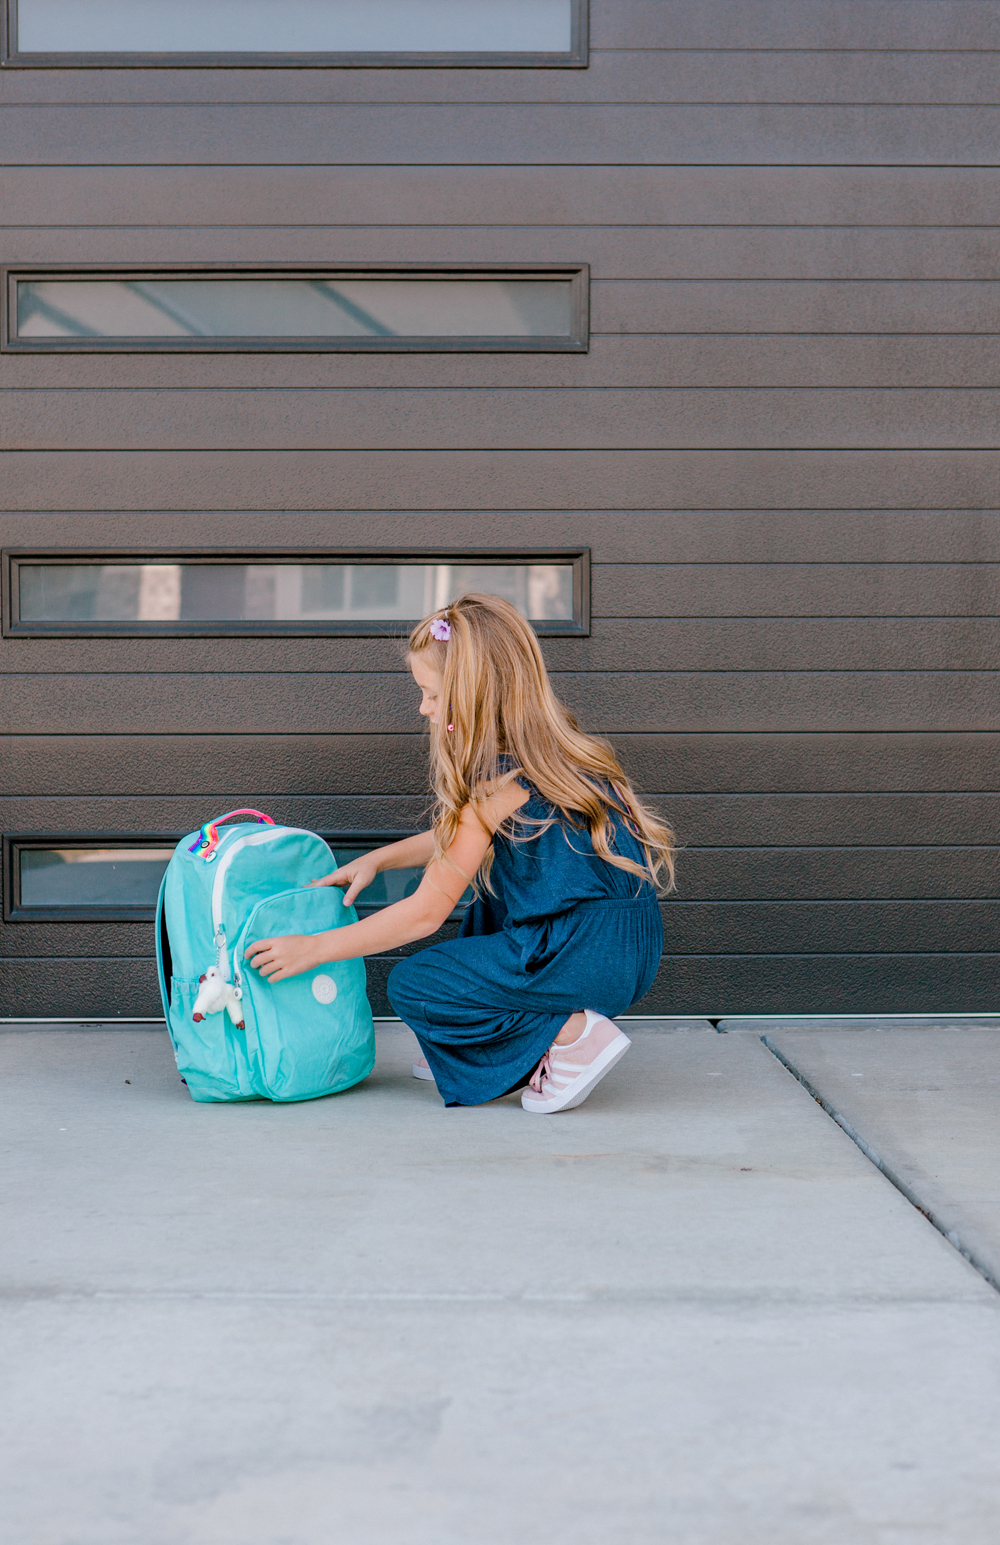 kailee wright Kipling Backpacks Back to School